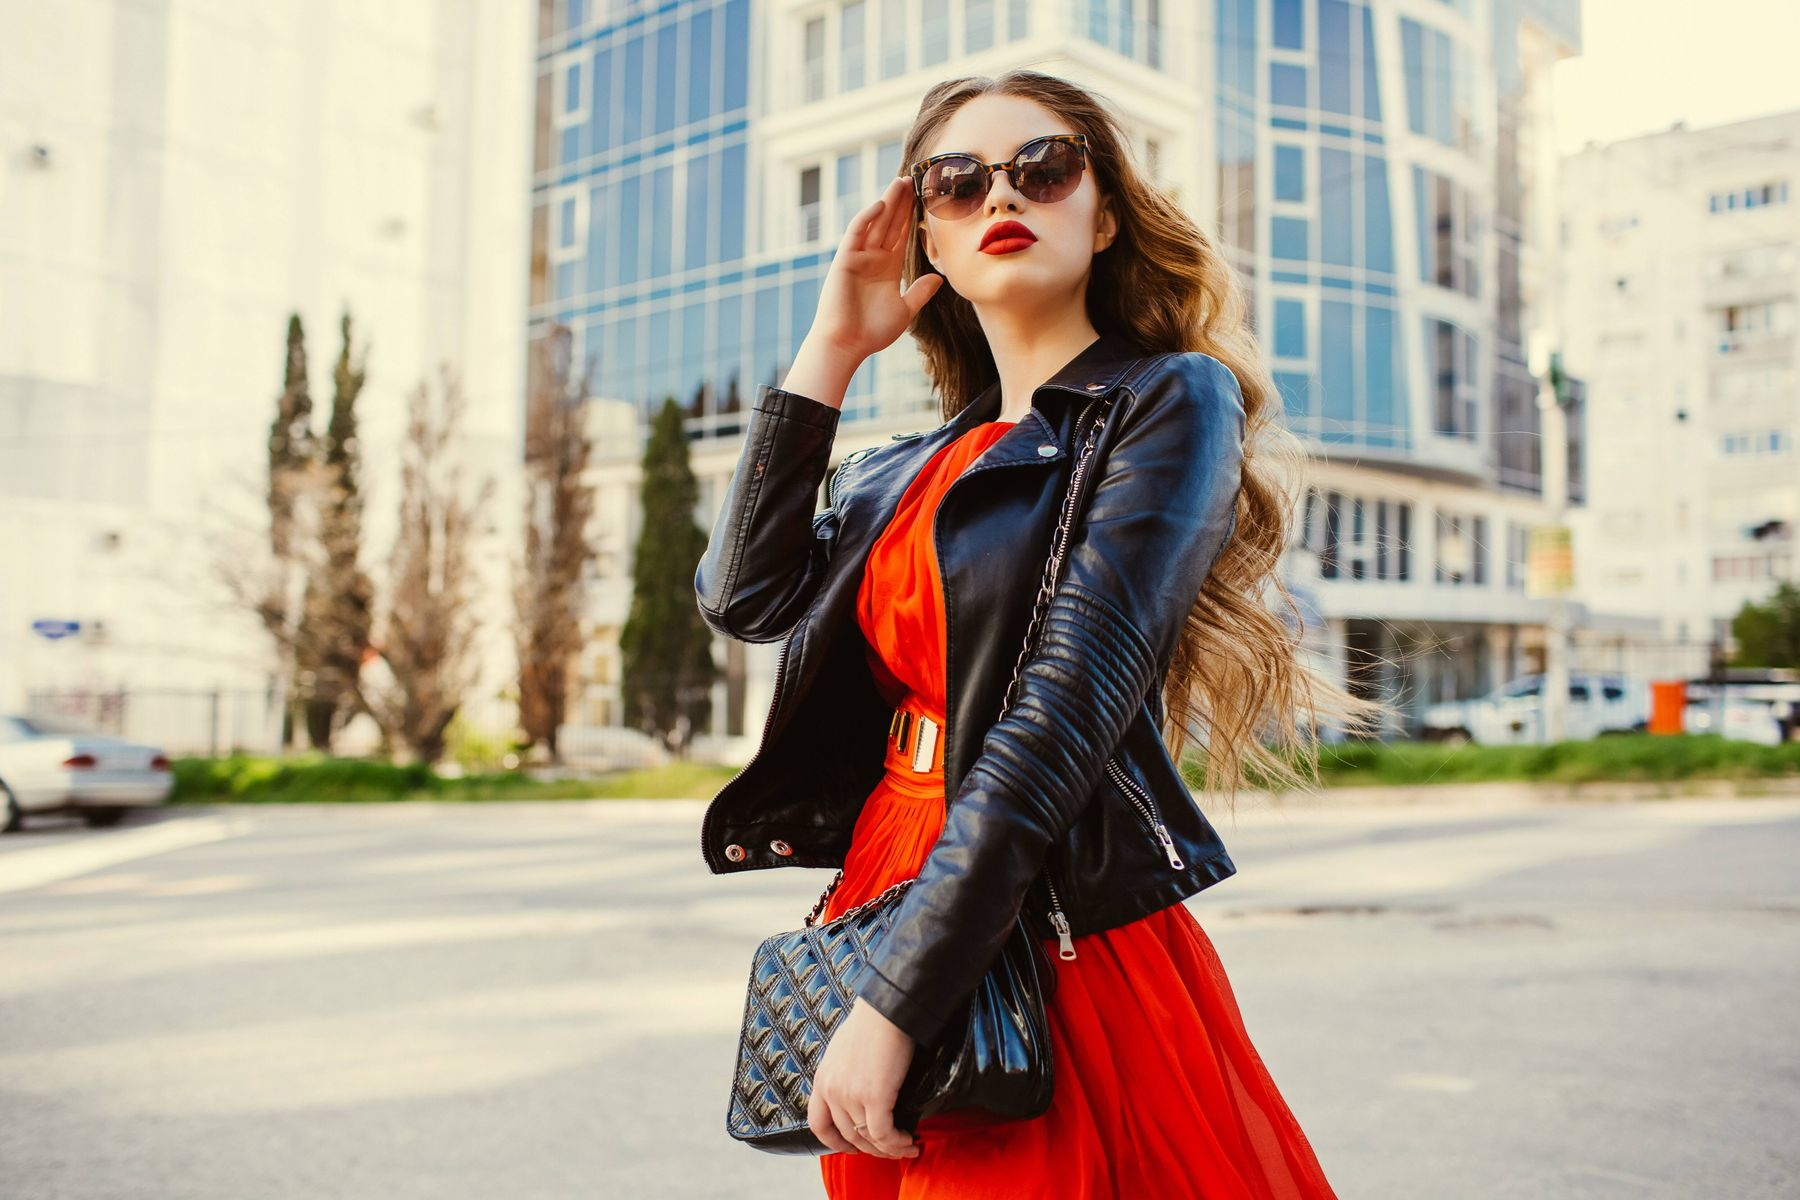 How to Care for Leather Jackets | Cleanipedia